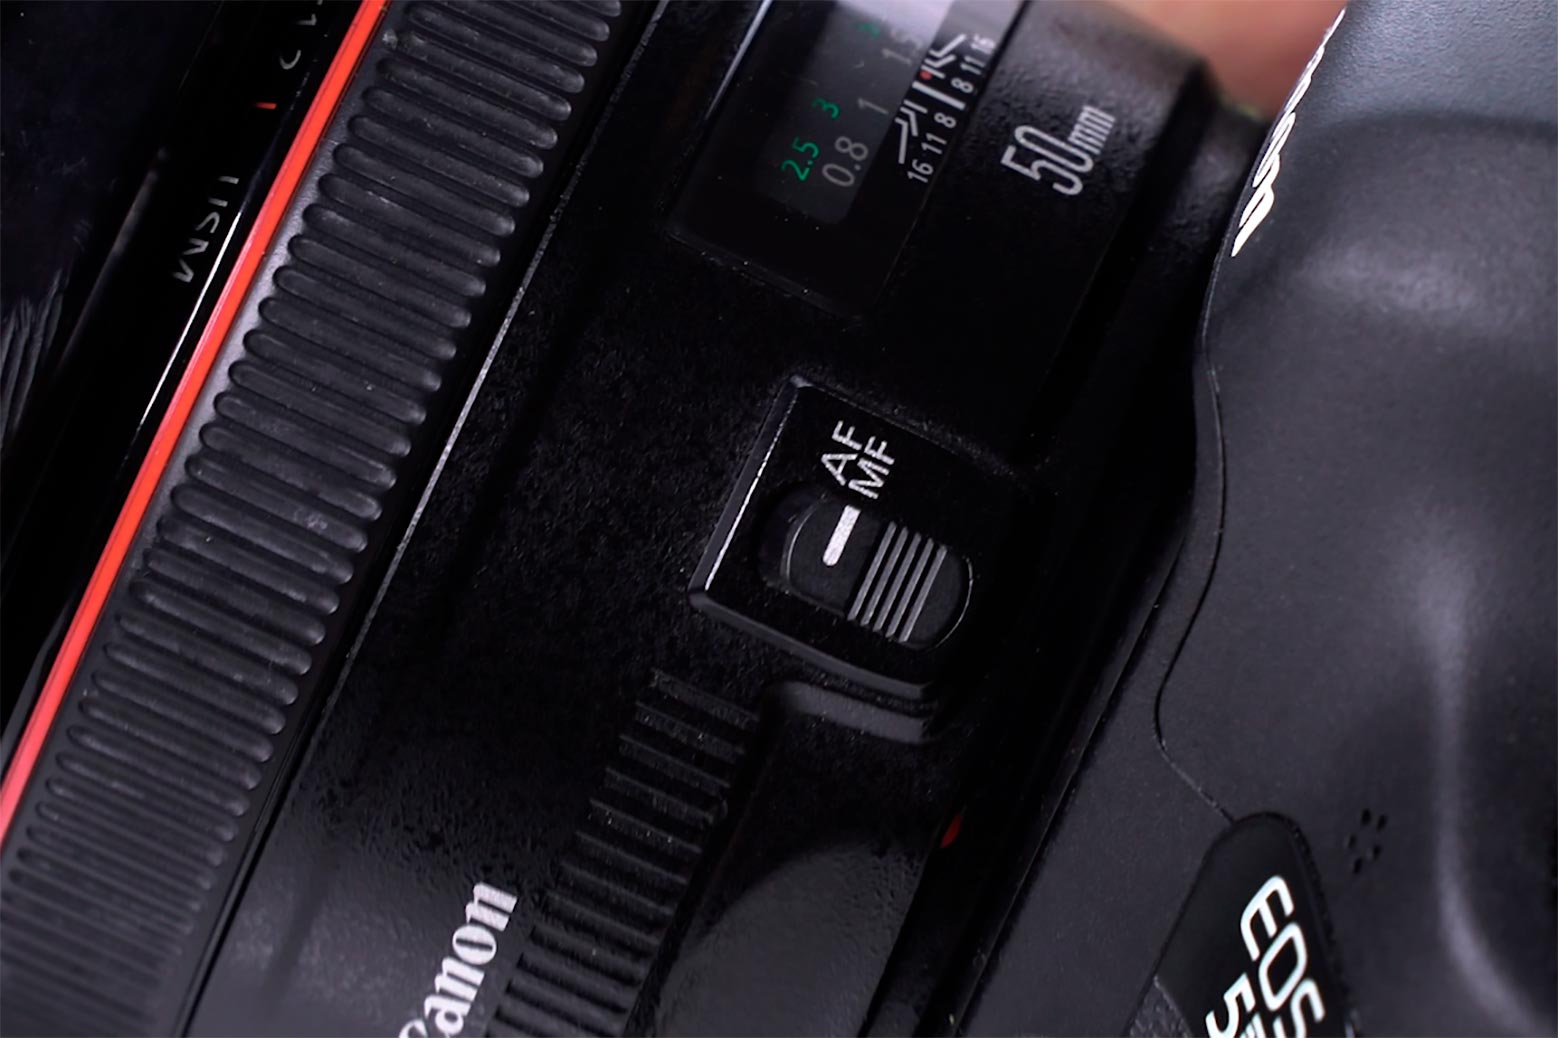 Manual camera focus ring and closeup of AF/MF switch.